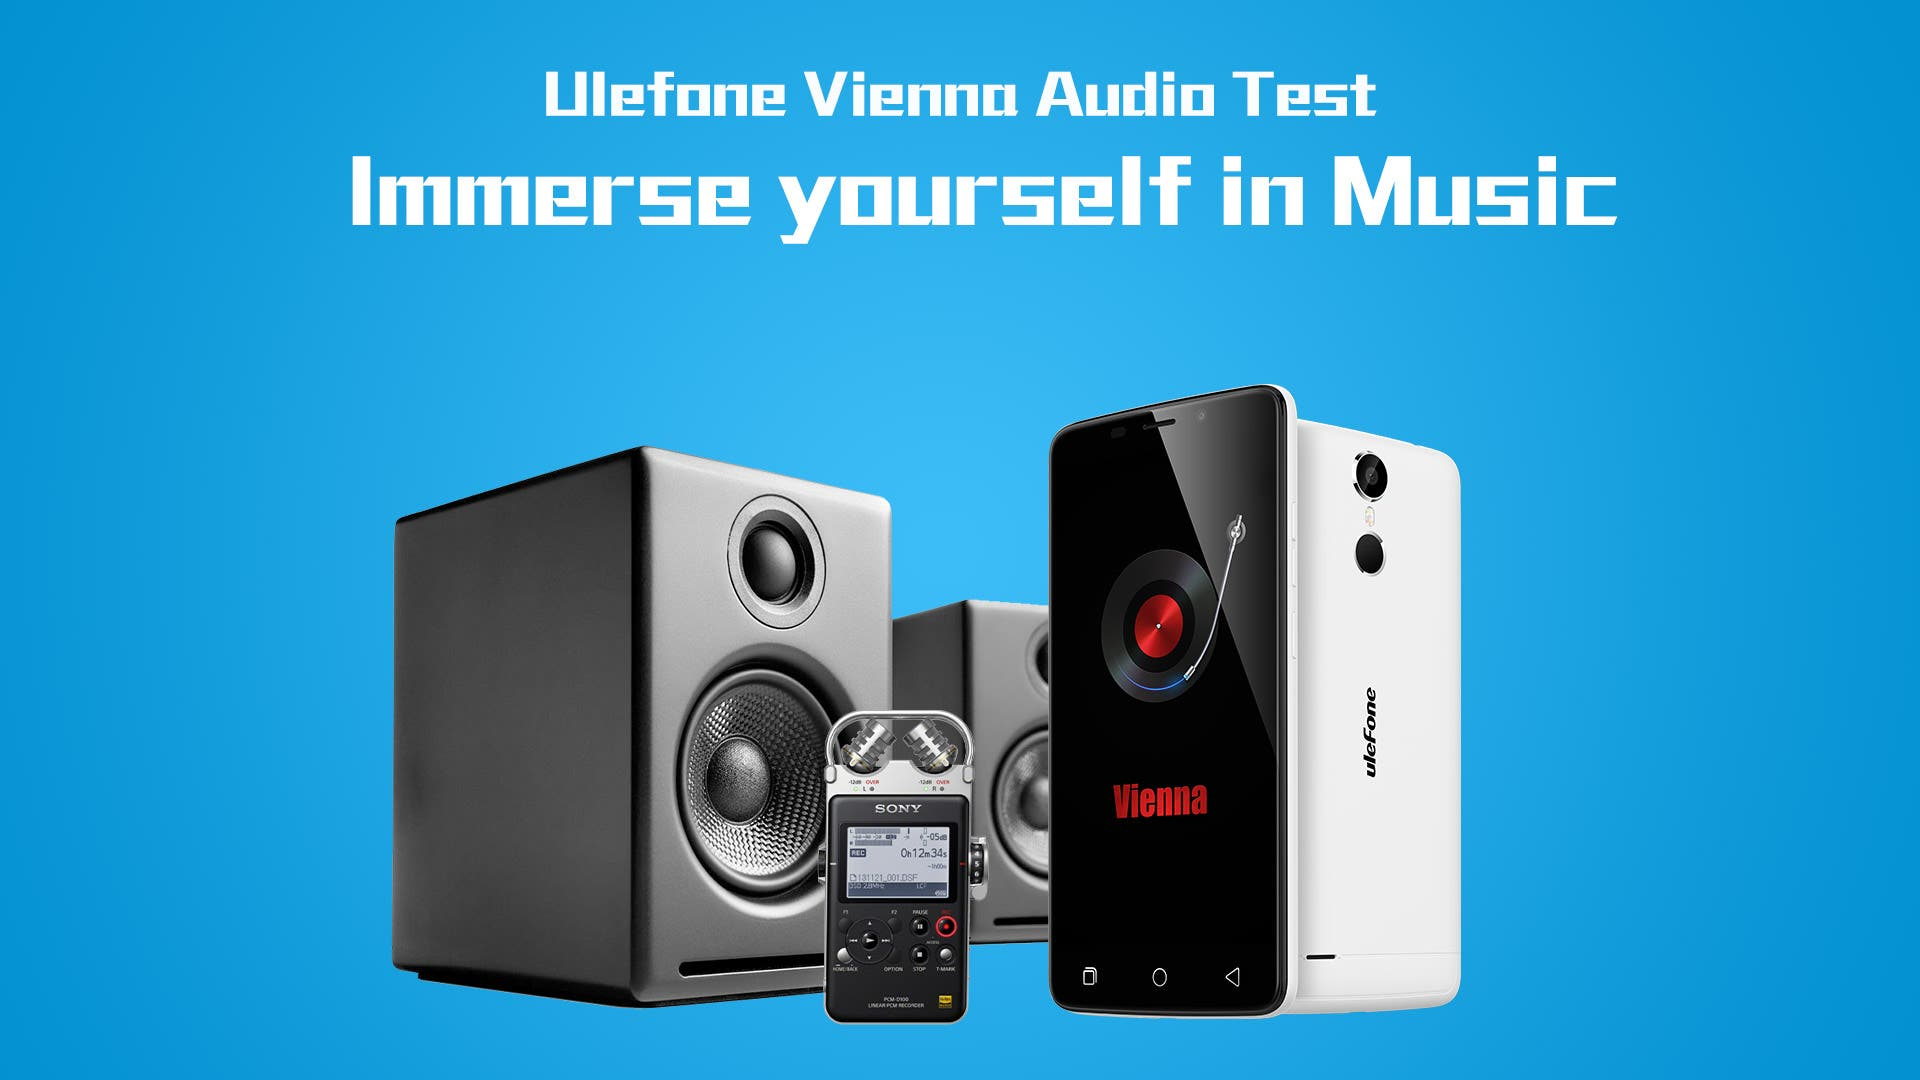 Ulefone Vienna Audio Test